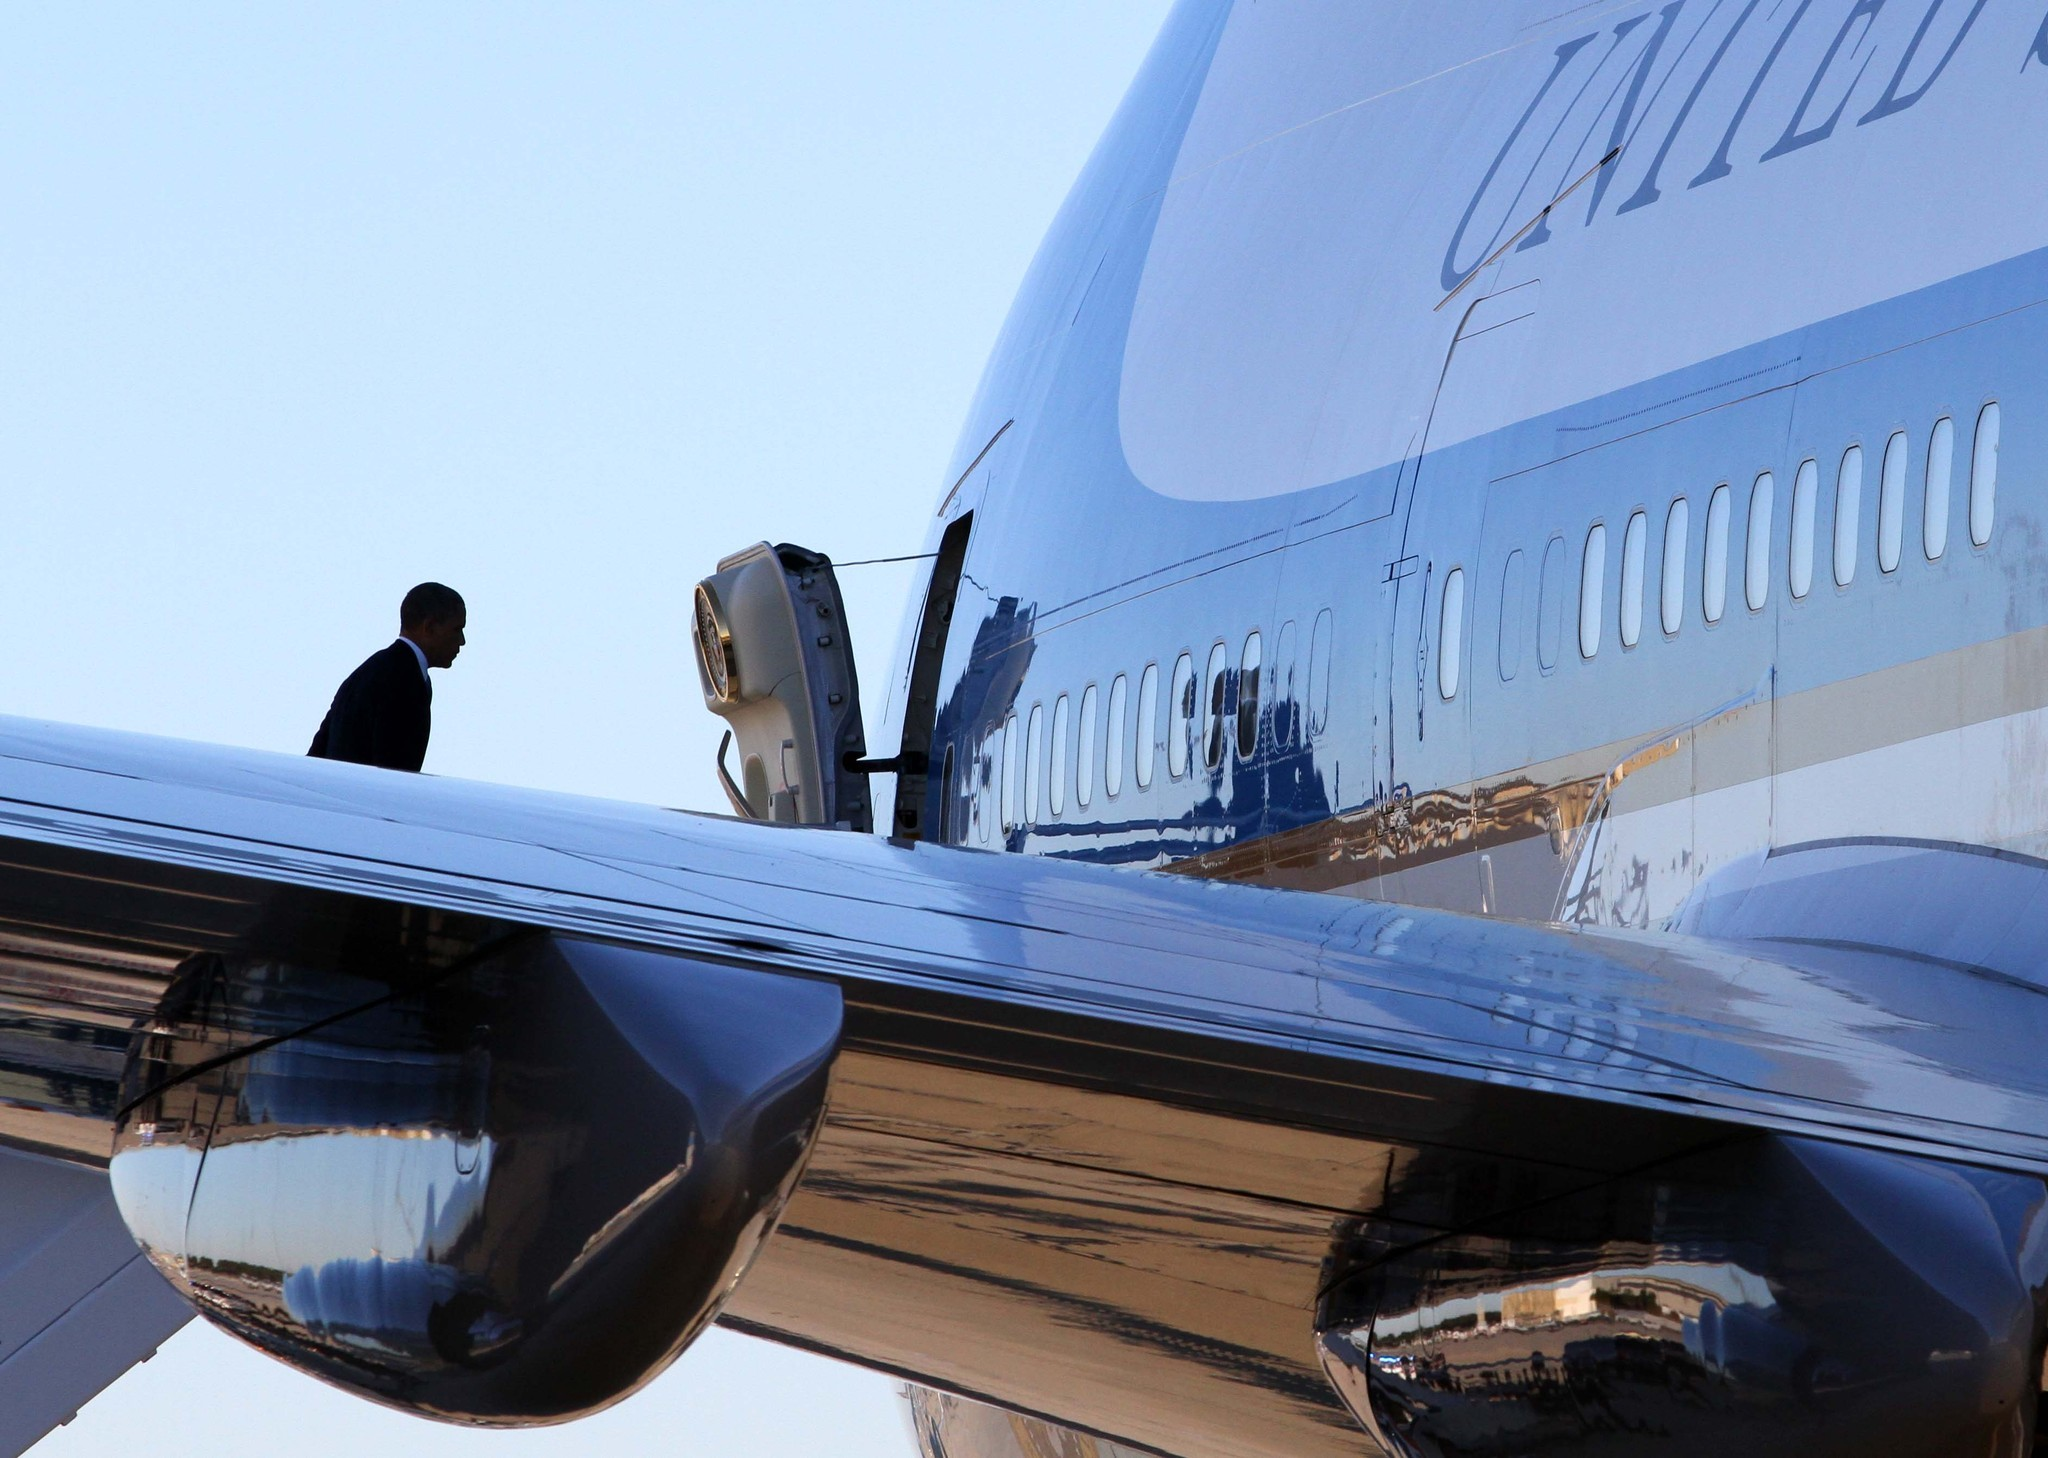 President Barack Obama boards Air Force One at Orlando International Airport after having to cancel his appearance with Bill Clinton at the University of Central Florida, Monday, October 29, 2012. Concerns over strong winds from Hurricane Sandy forced Obama to return to Washington, DC.